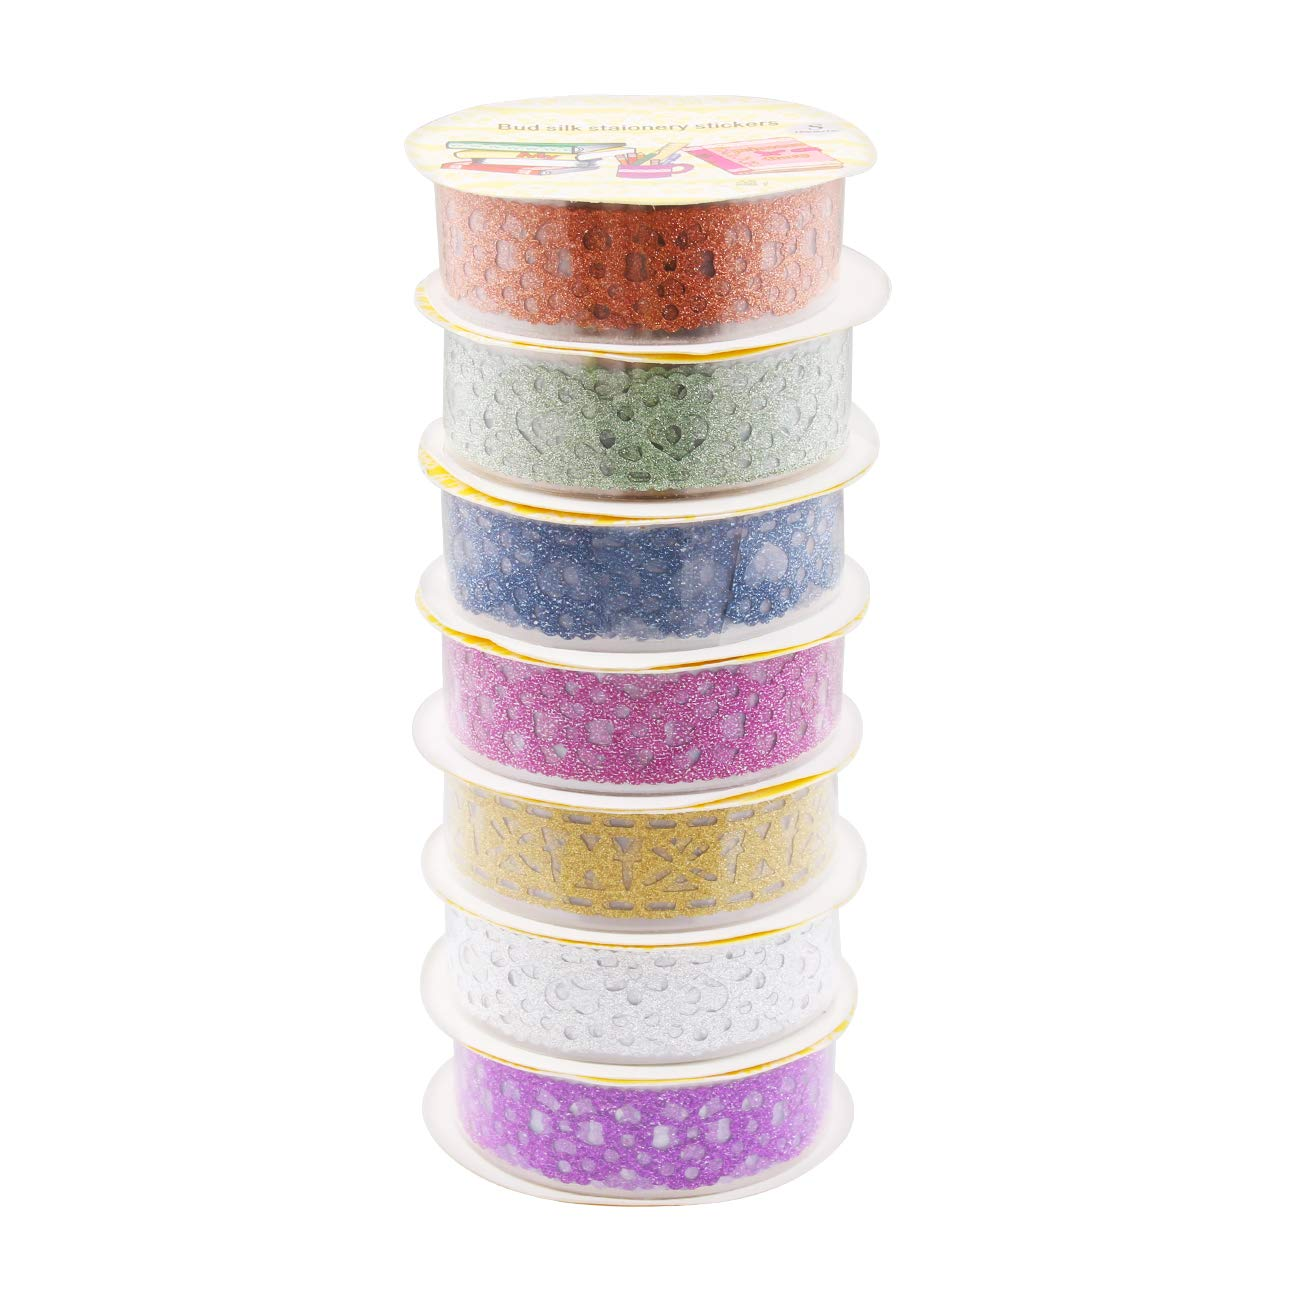 DIY All Girls Favorite Creative Candygirl Washi Tape Set of 30 Rolls Multi-purpose Scrapbook -Decorative Re-positional Masking tape. Great For Arts and Crafts